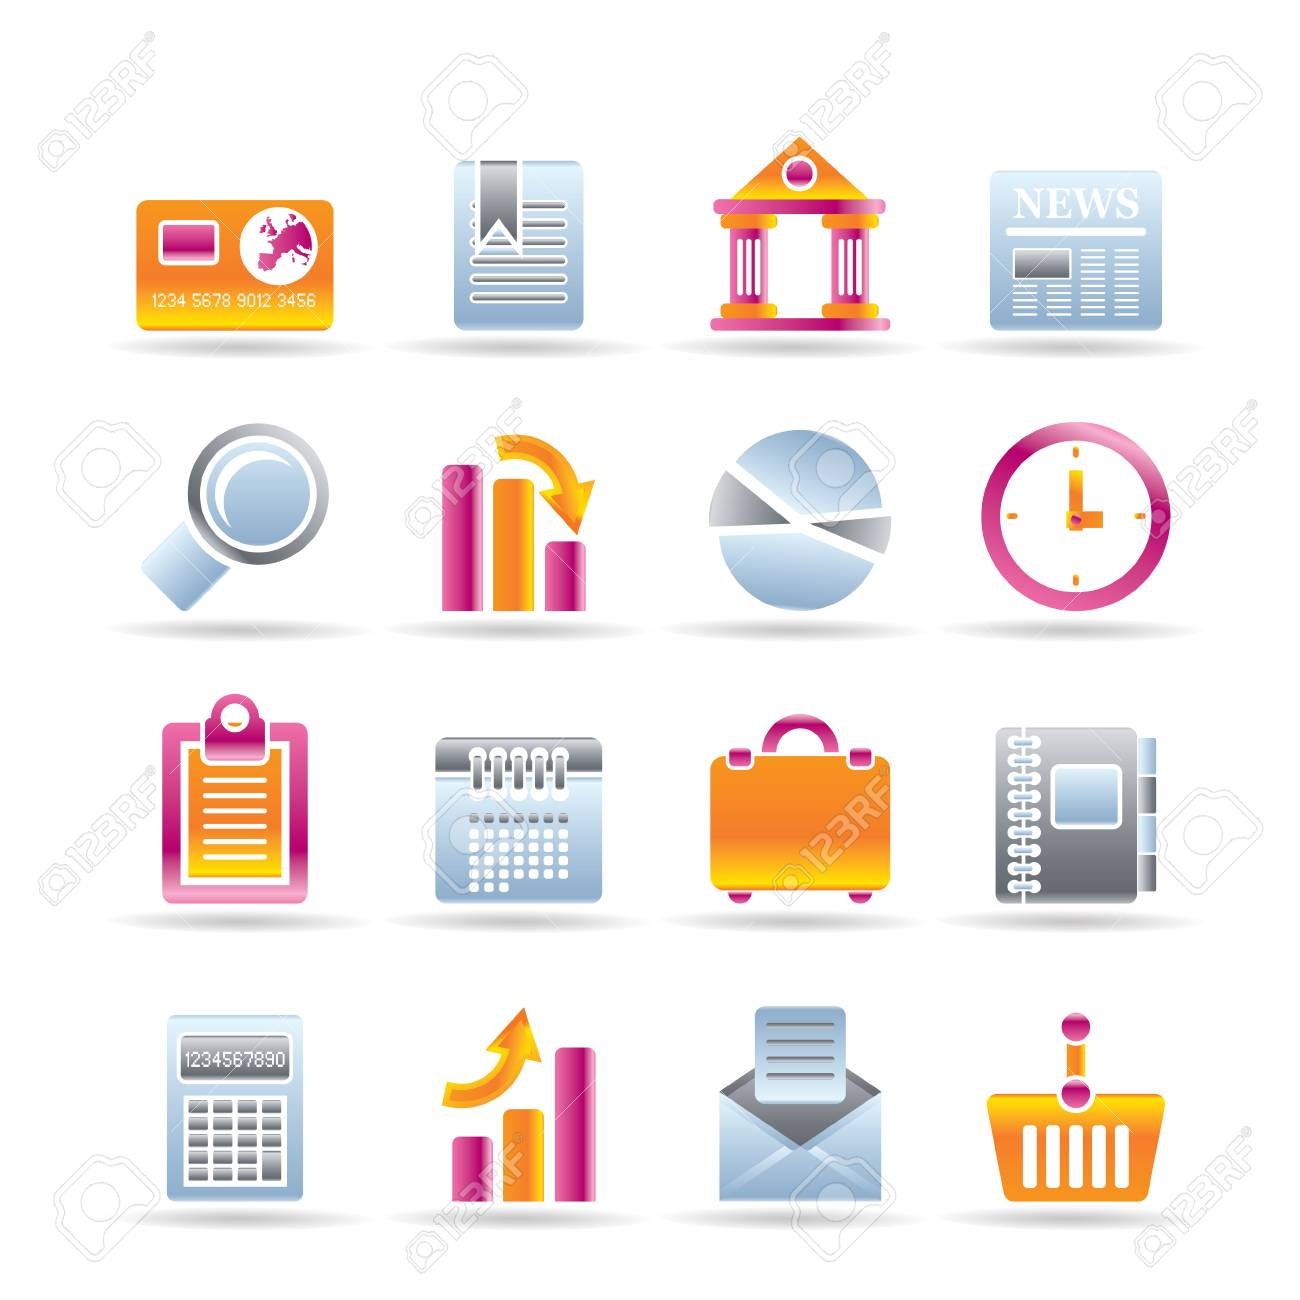 Business and Office Realistic Internet Icons Stock Vector - 7337876